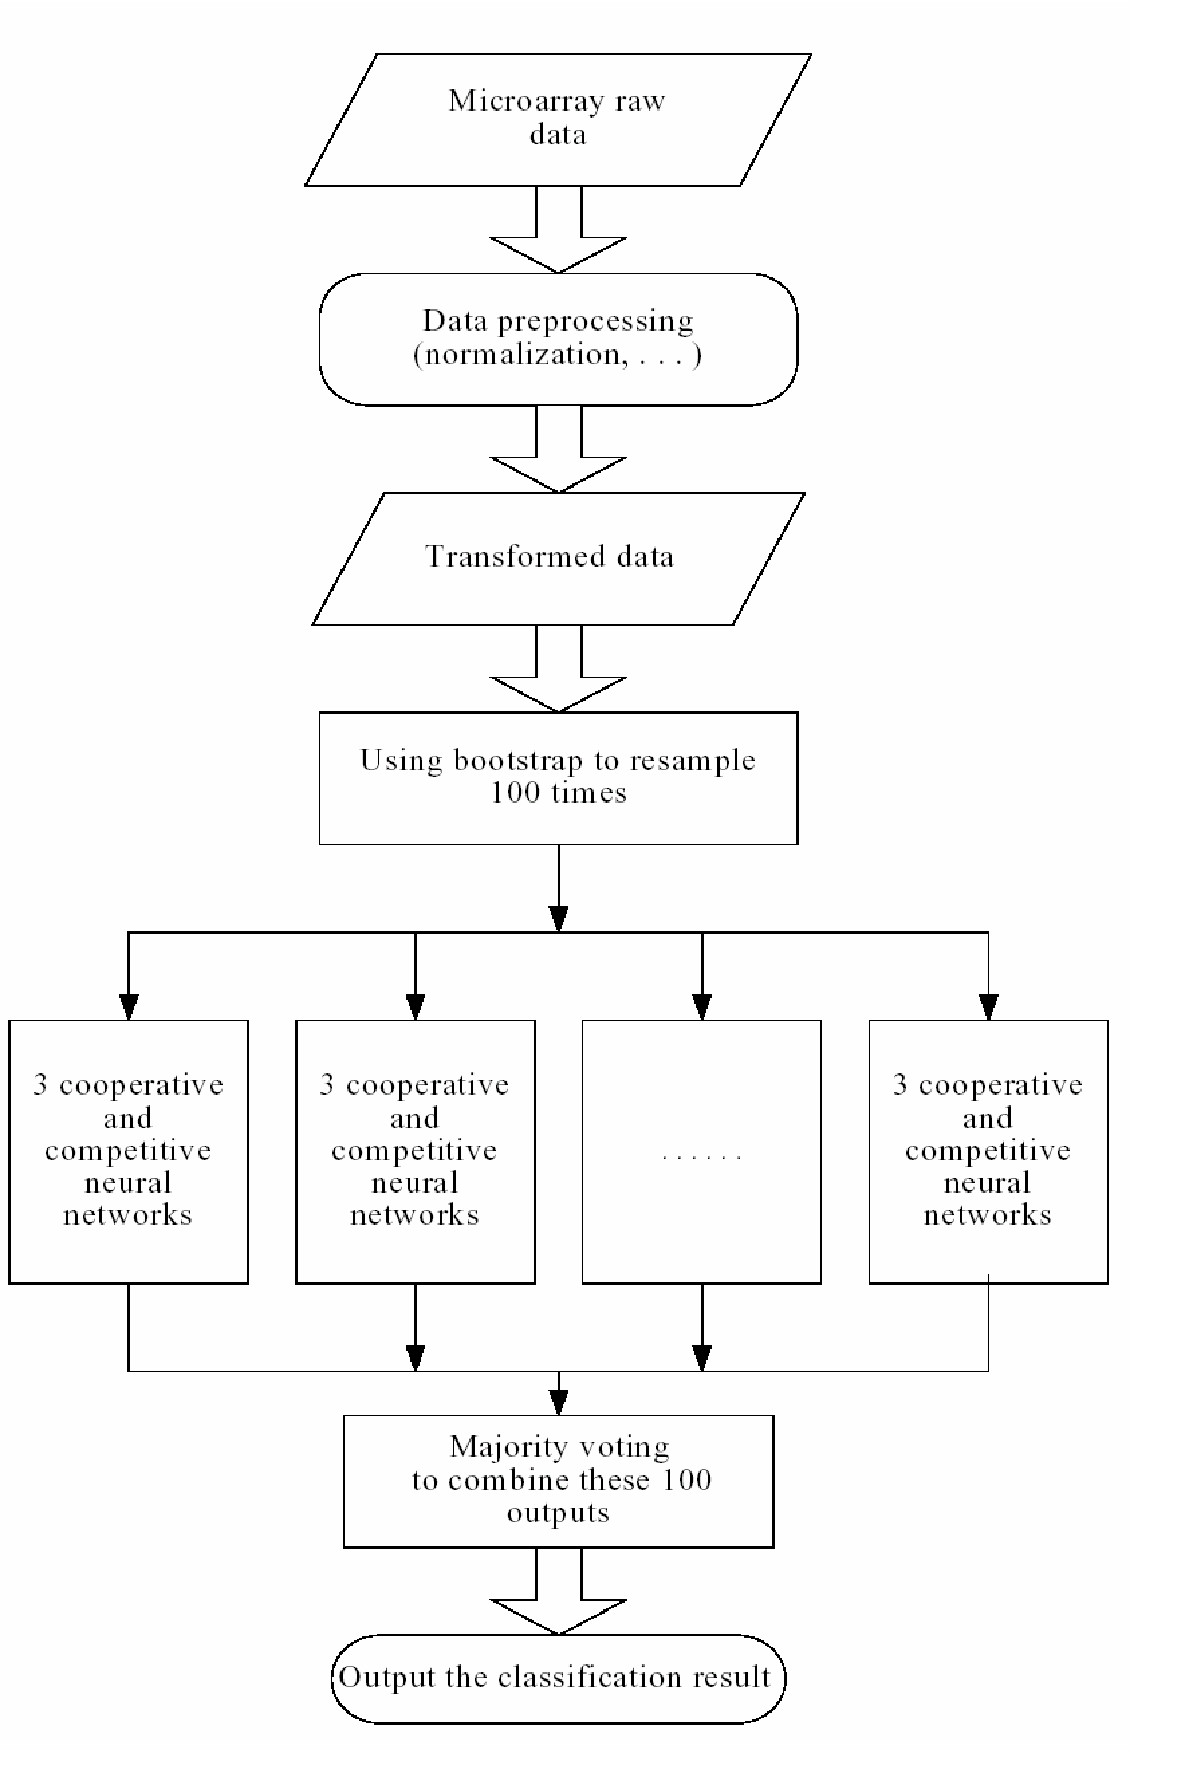 http://static-content.springer.com/image/art%3A10.1186%2F1471-2105-5-136/MediaObjects/12859_2004_Article_252_Fig1_HTML.jpg